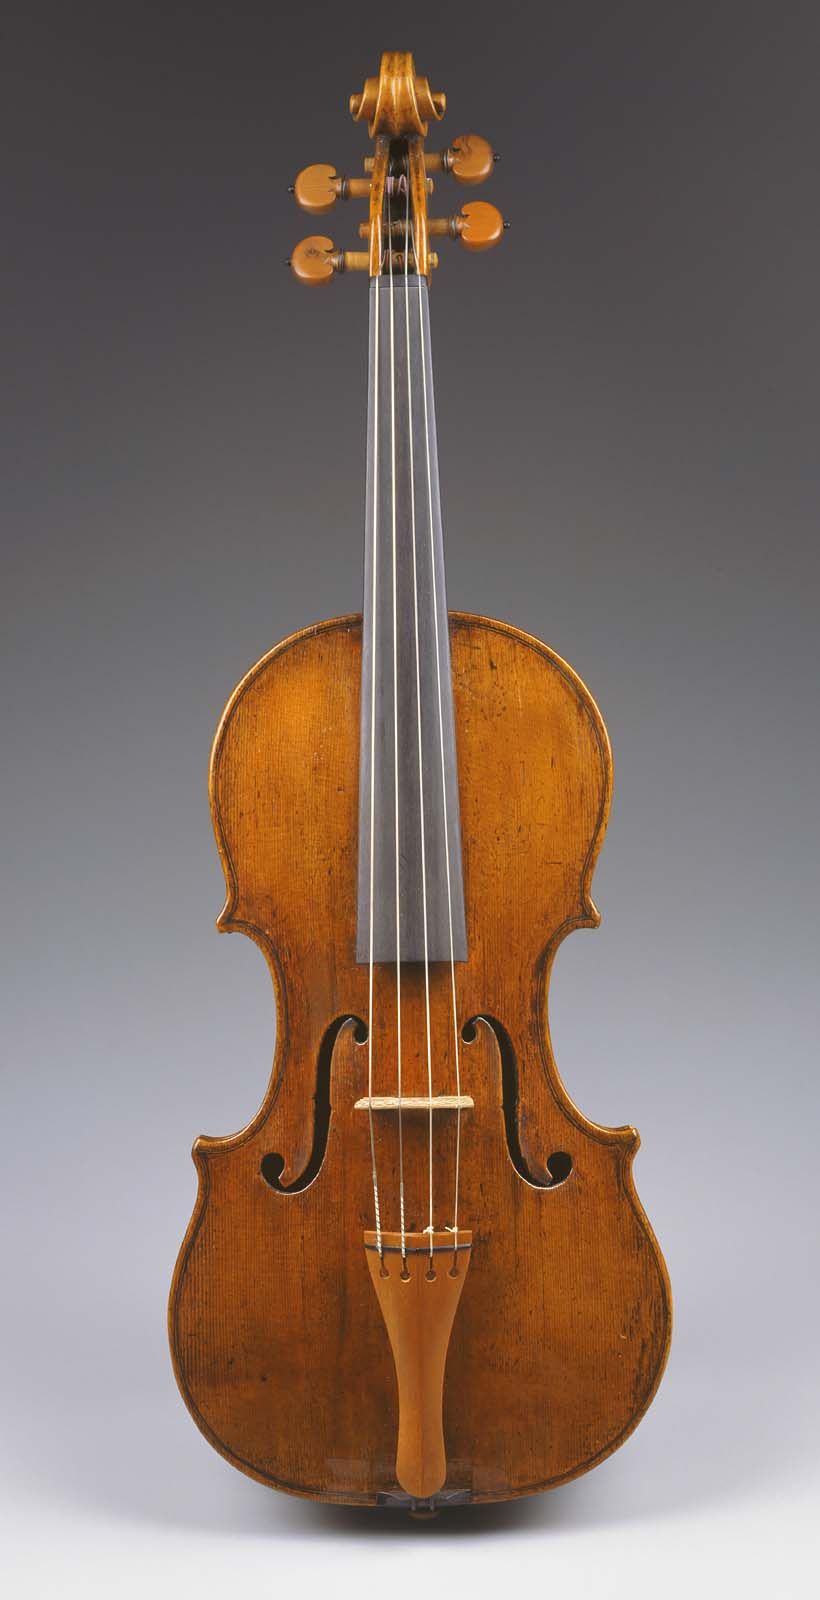 Bowed String Instruments | Museum of Fine Arts, Boston